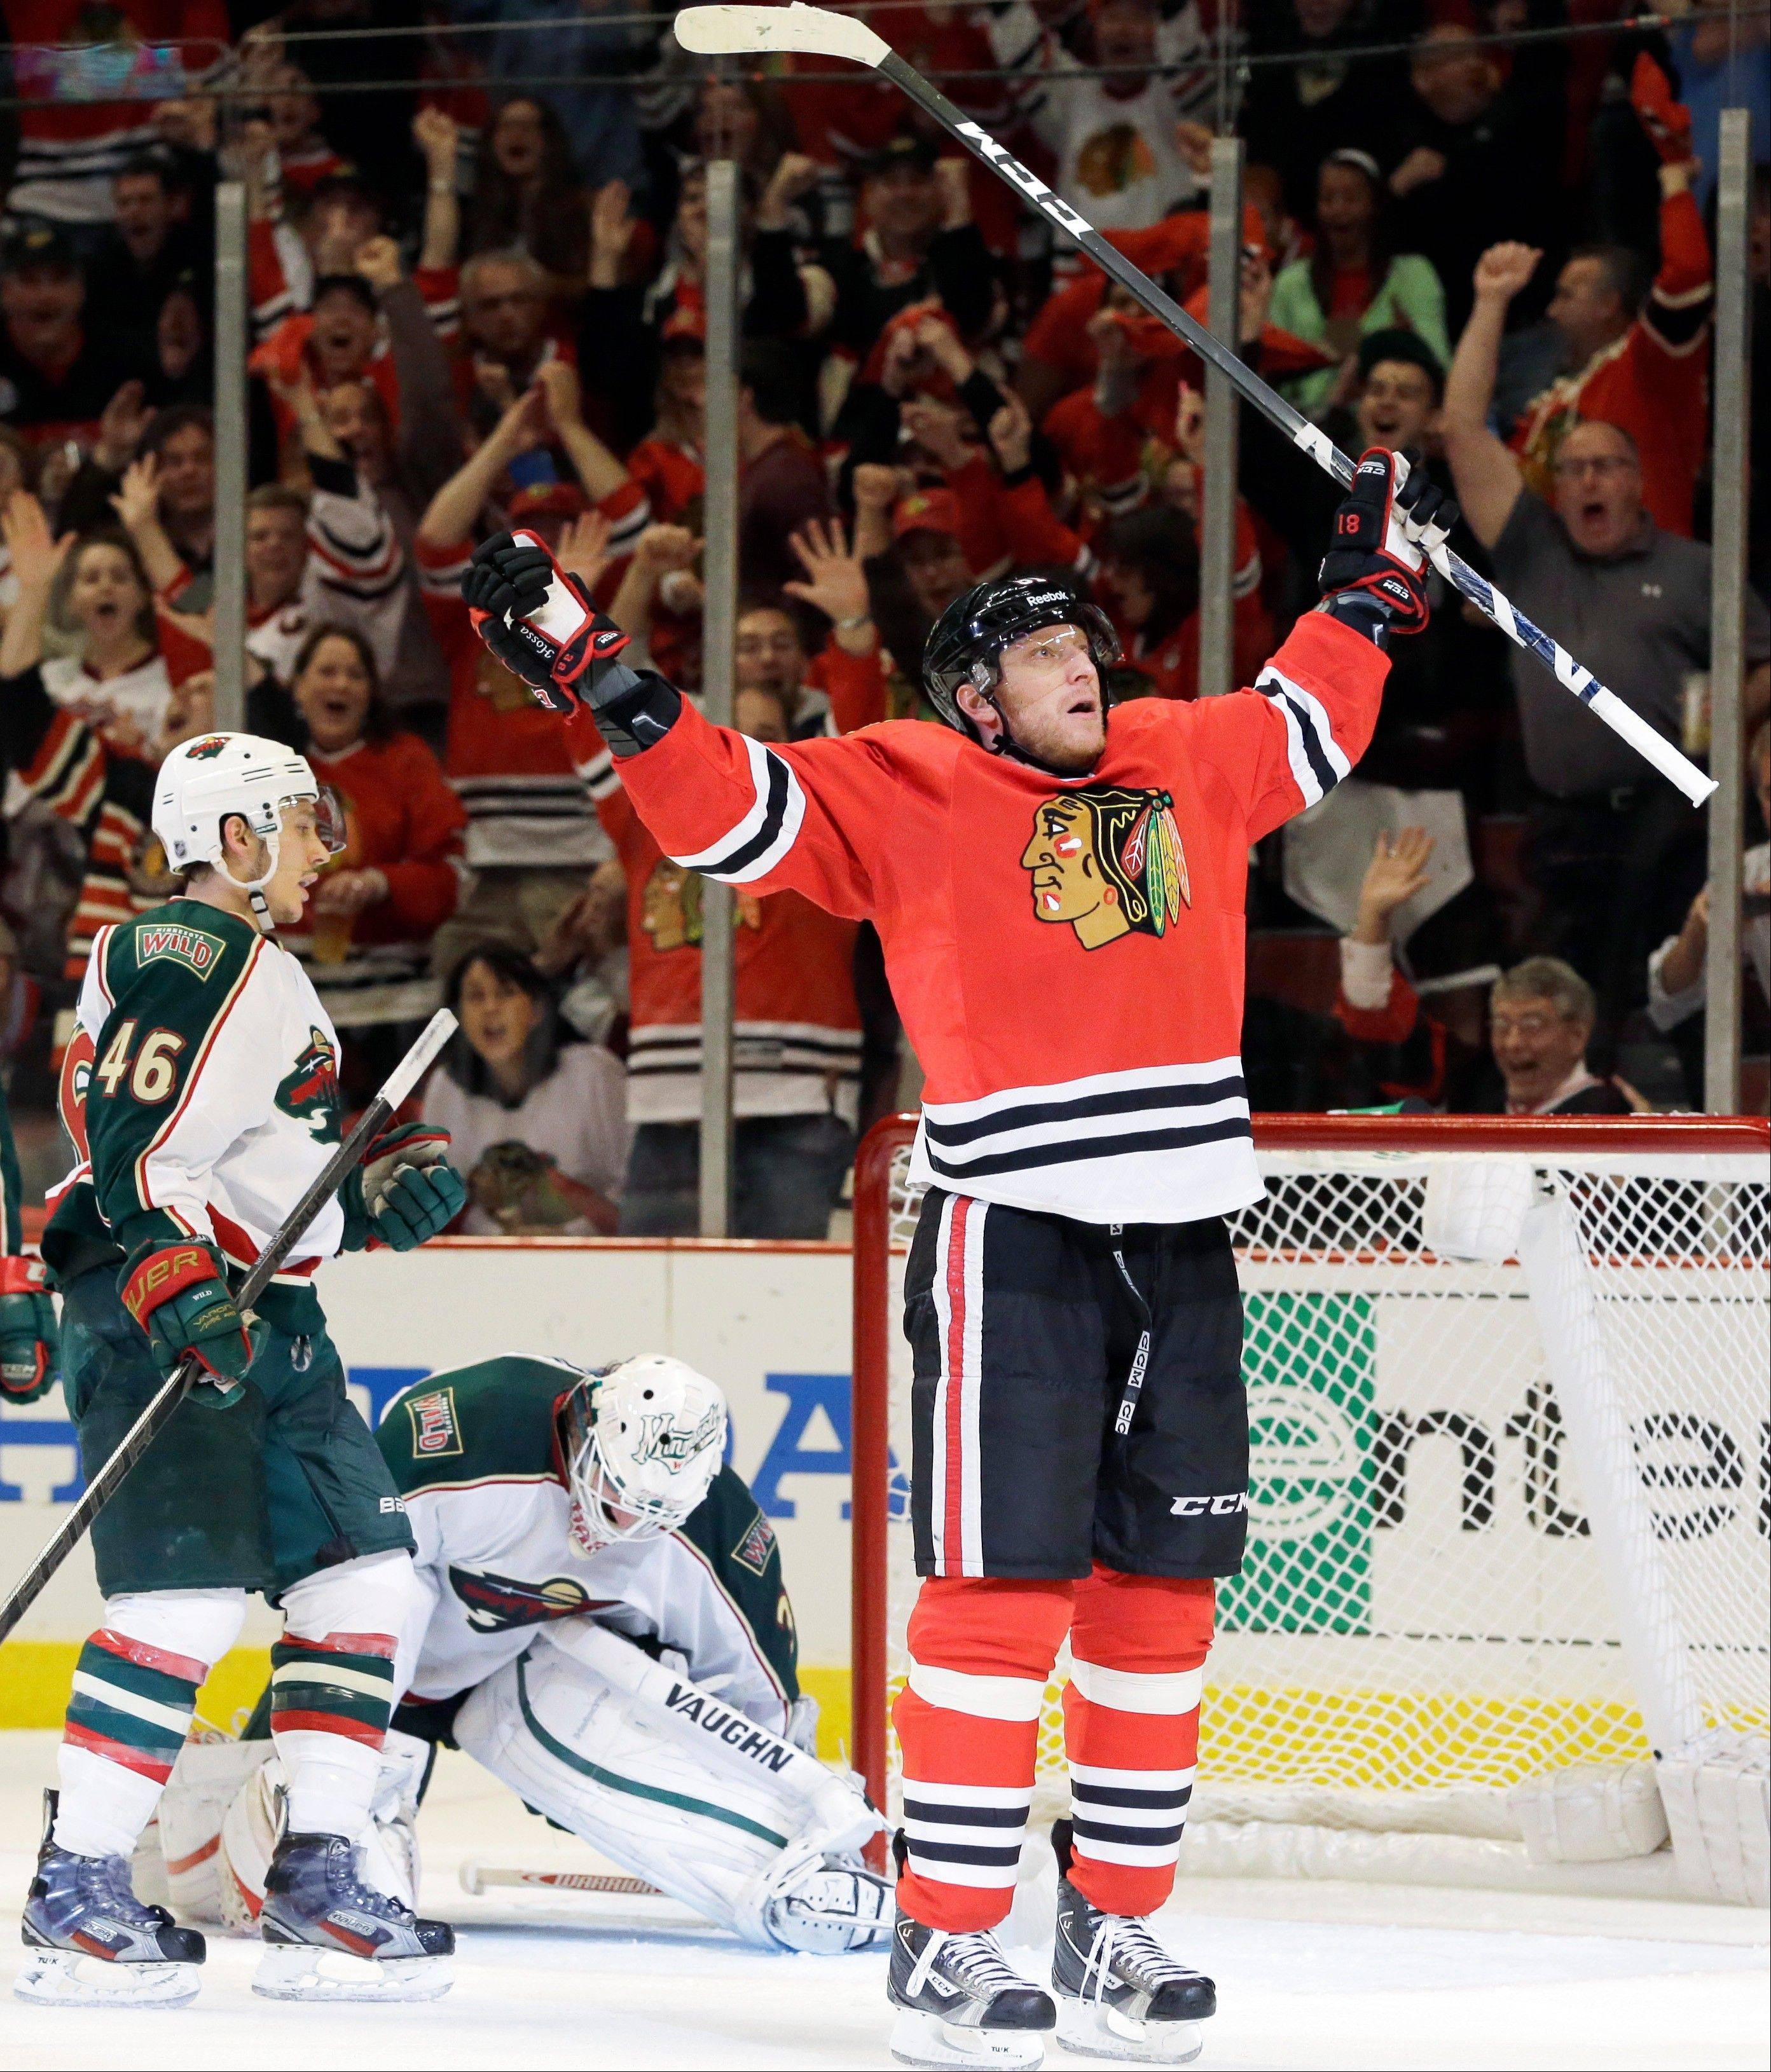 Chicago Blackhawks' Marian Hossa, right, celebrates after scoring his second goal as Minnesota Wild goalie Josh Harding (37) and Jared Spurgeon (46) react during the second period of Game 5 of an NHL hockey Stanley Cup first-round playoff series in Chicago, Thursday, May 9, 2013.